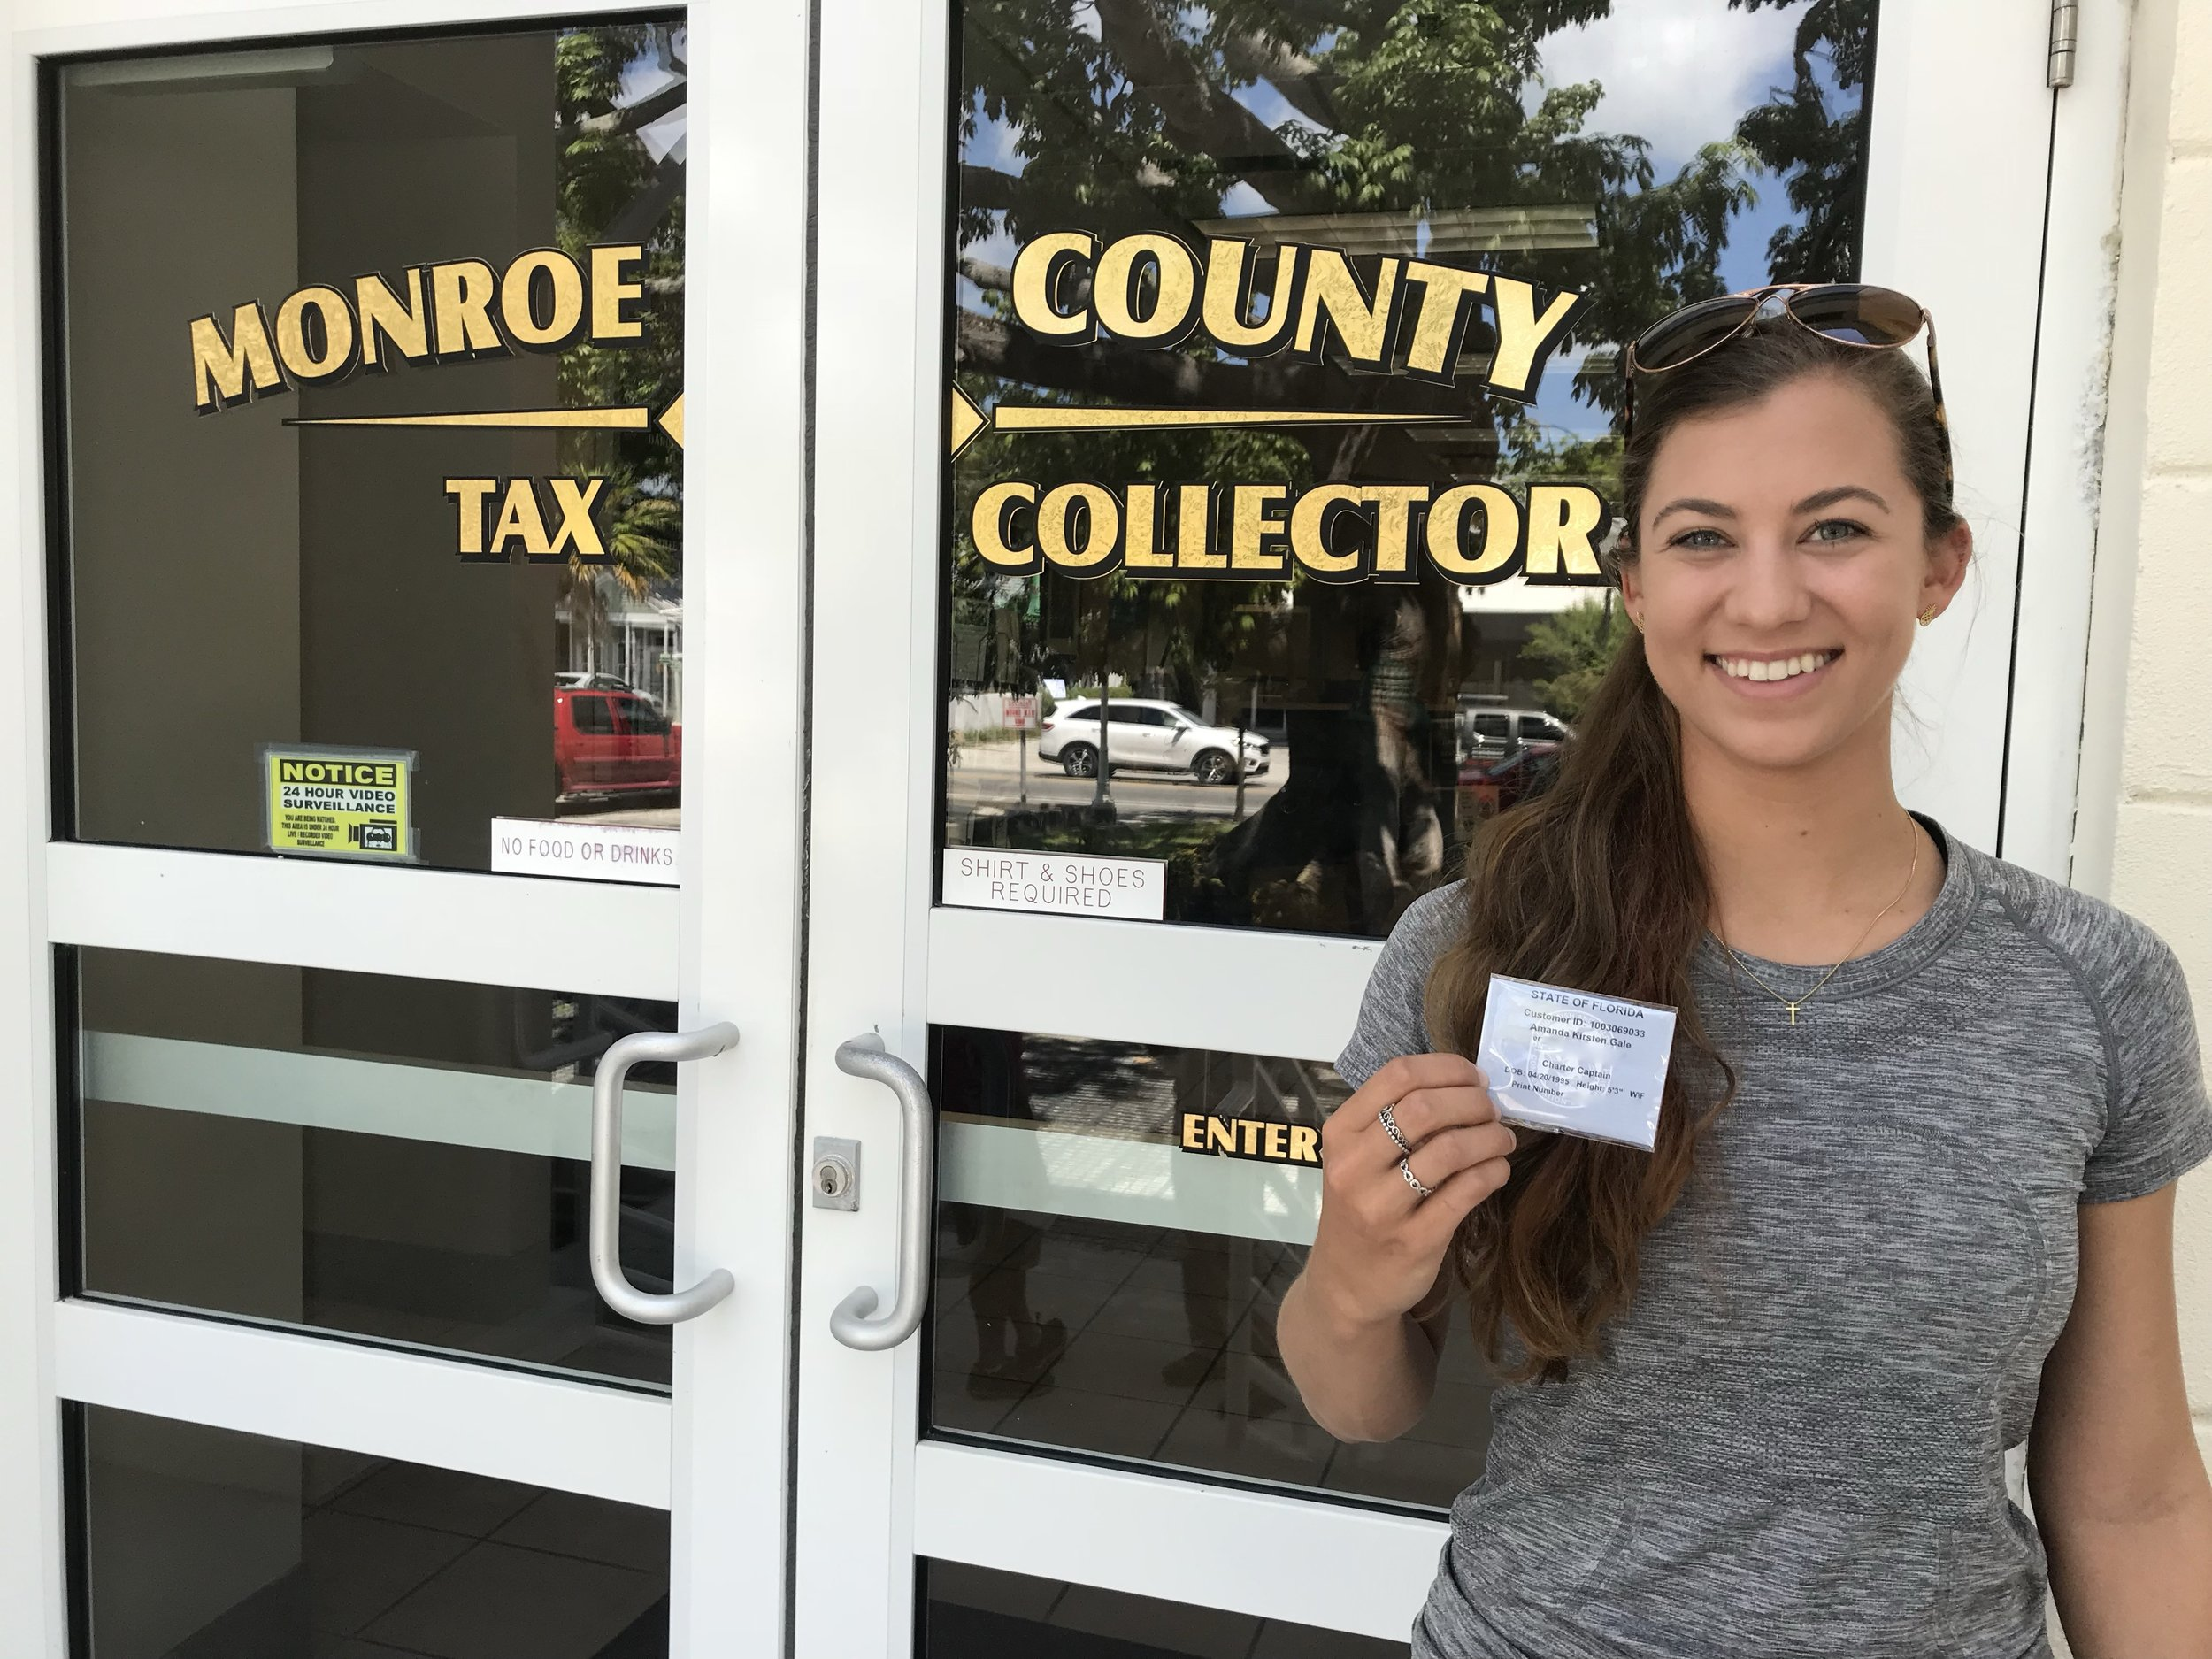 Amanda at the Monroe Country Tax Office doing her due diligence!